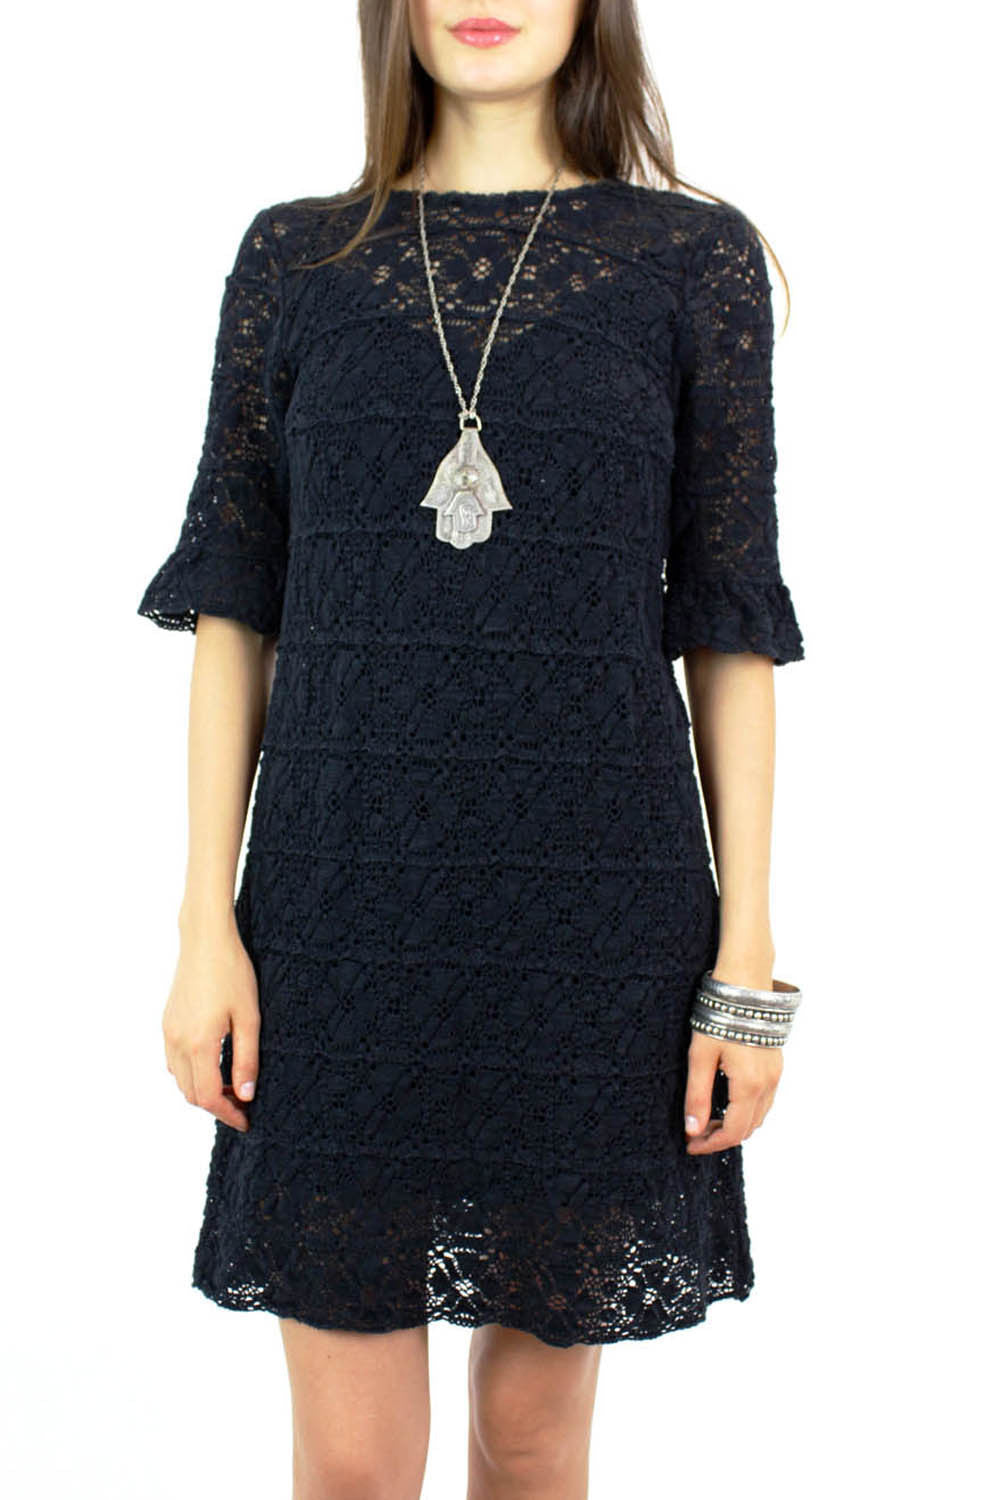 Brussels crochet floral lace dress S/M